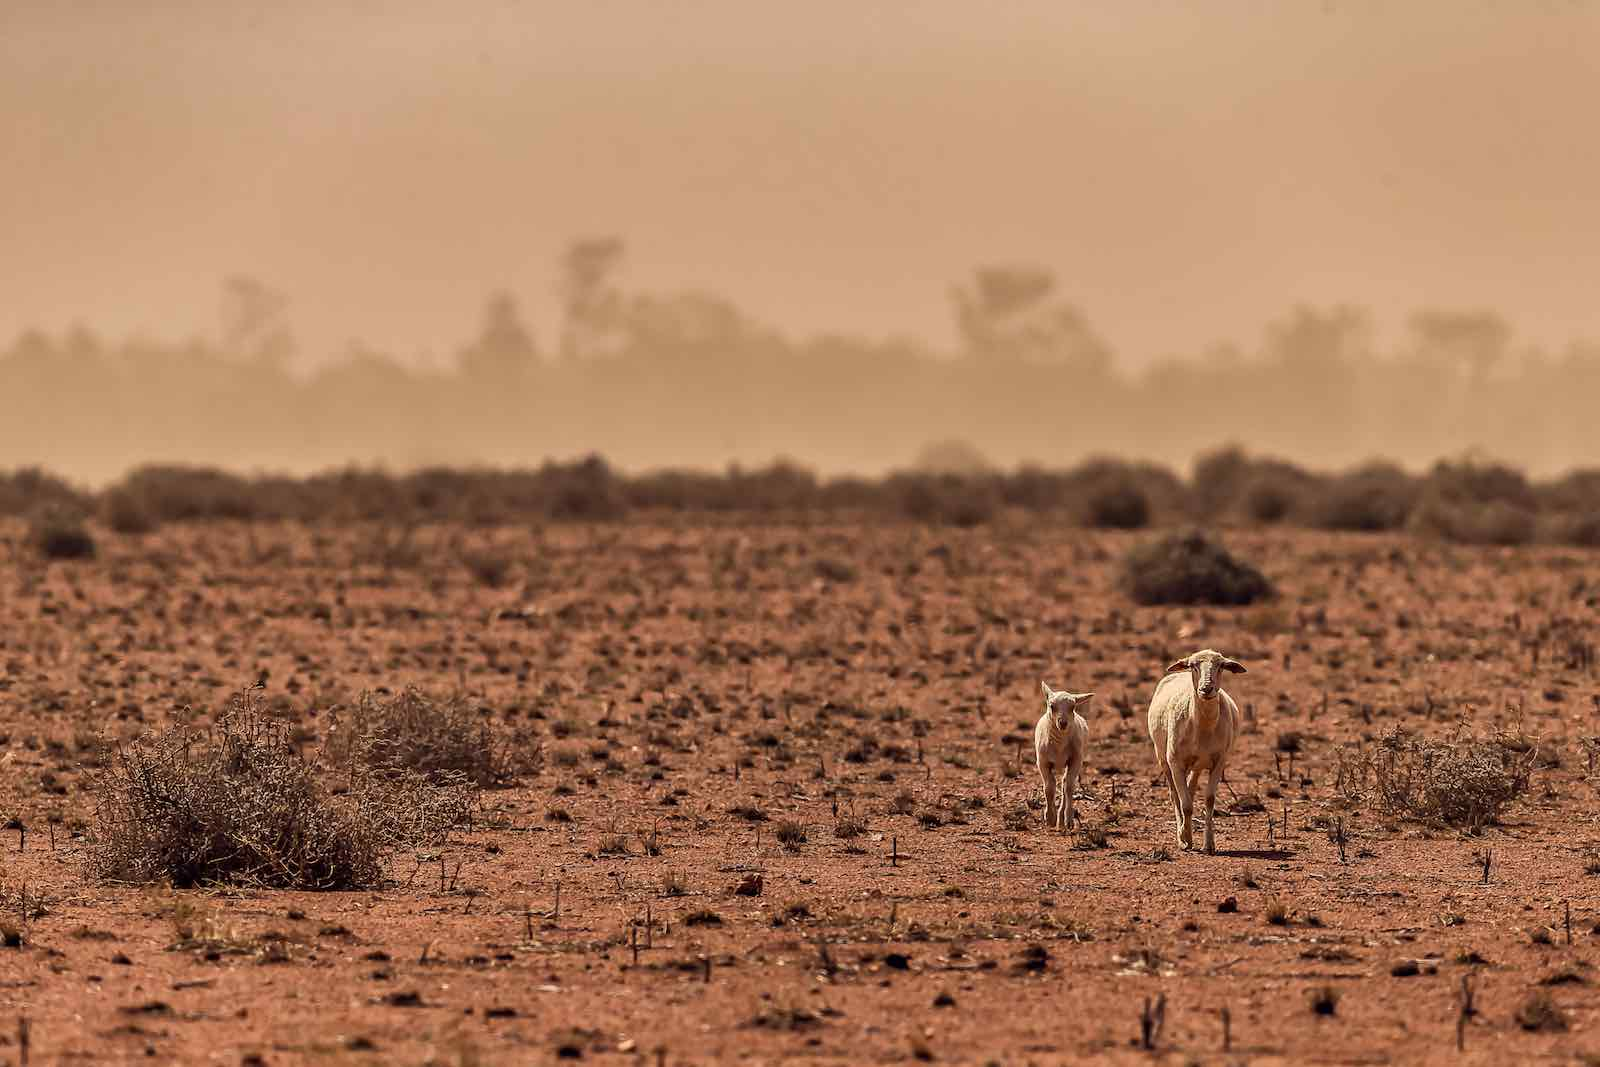 A dust storm on a drought-stricken Australian sheep paddock (Klae Mcguinness/Getty Images)